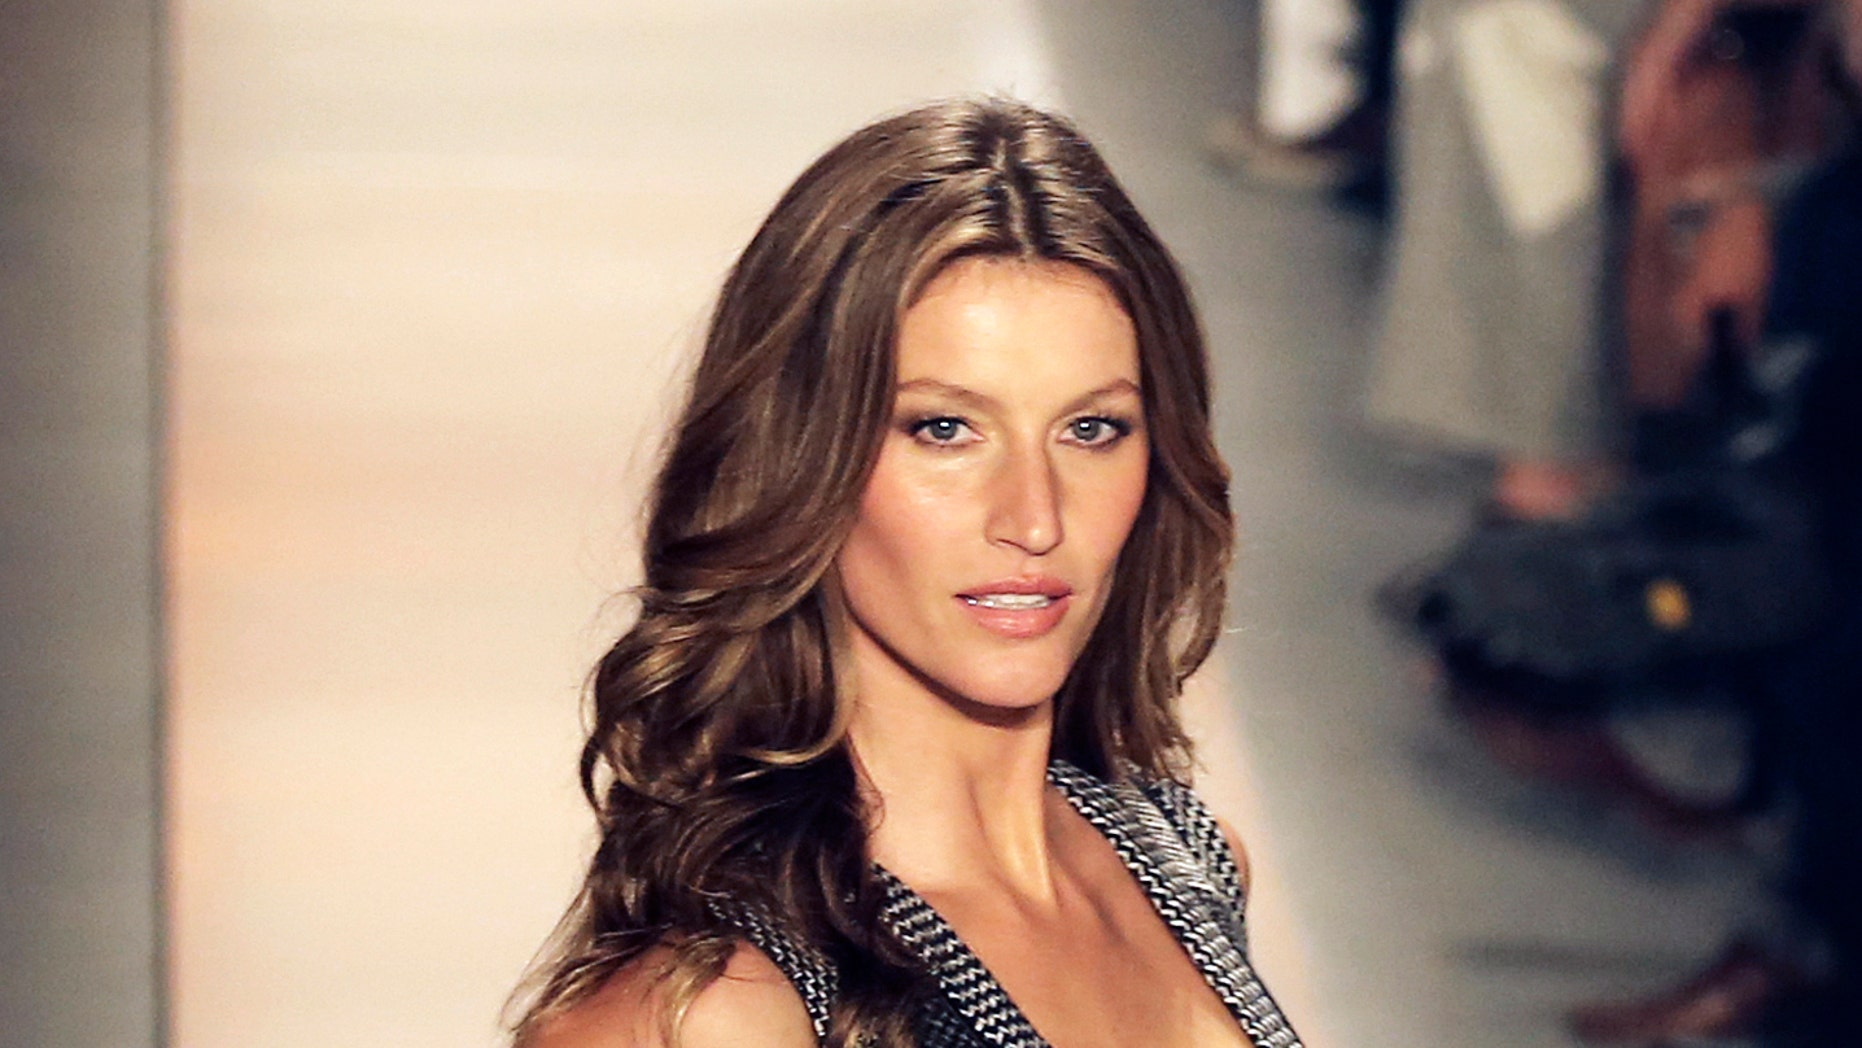 October 31, 2013. Brazilian model Gisele Bundchen presents a creation from Colcci Winter 2014 collection during Sao Paulo Fashion Week.